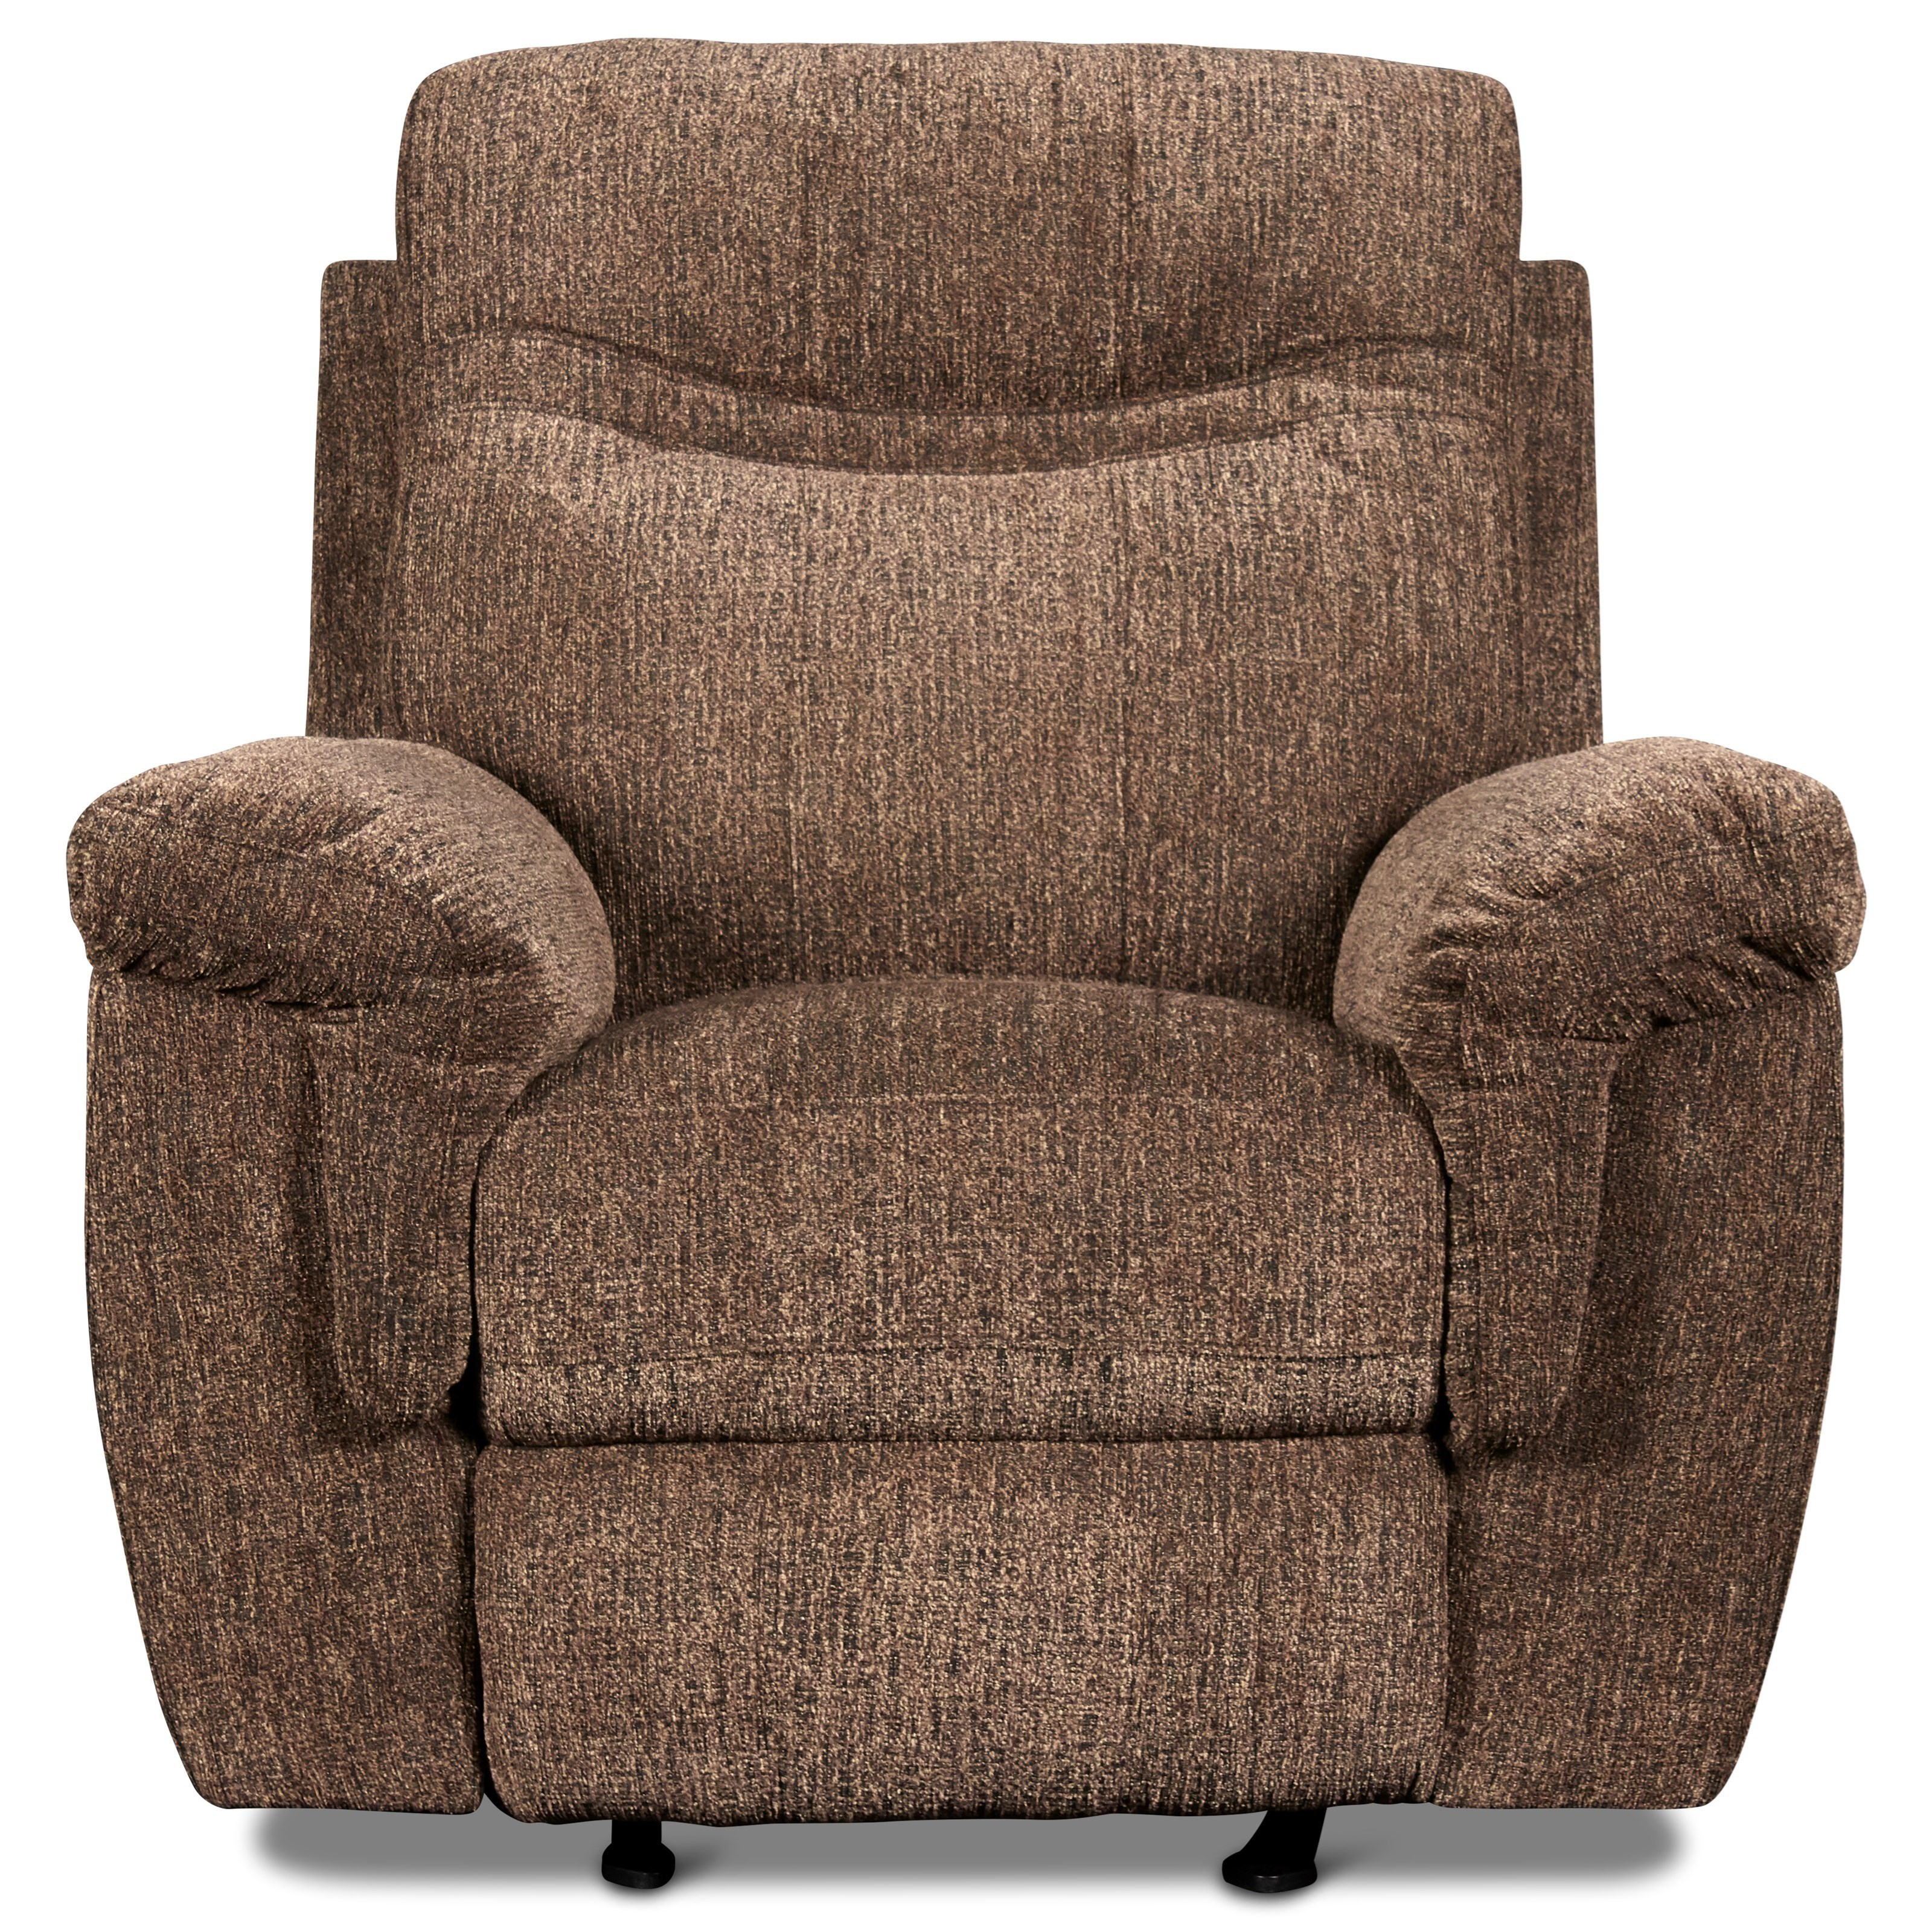 Sheffield Glider Recliner by New Classic at Wilcox Furniture